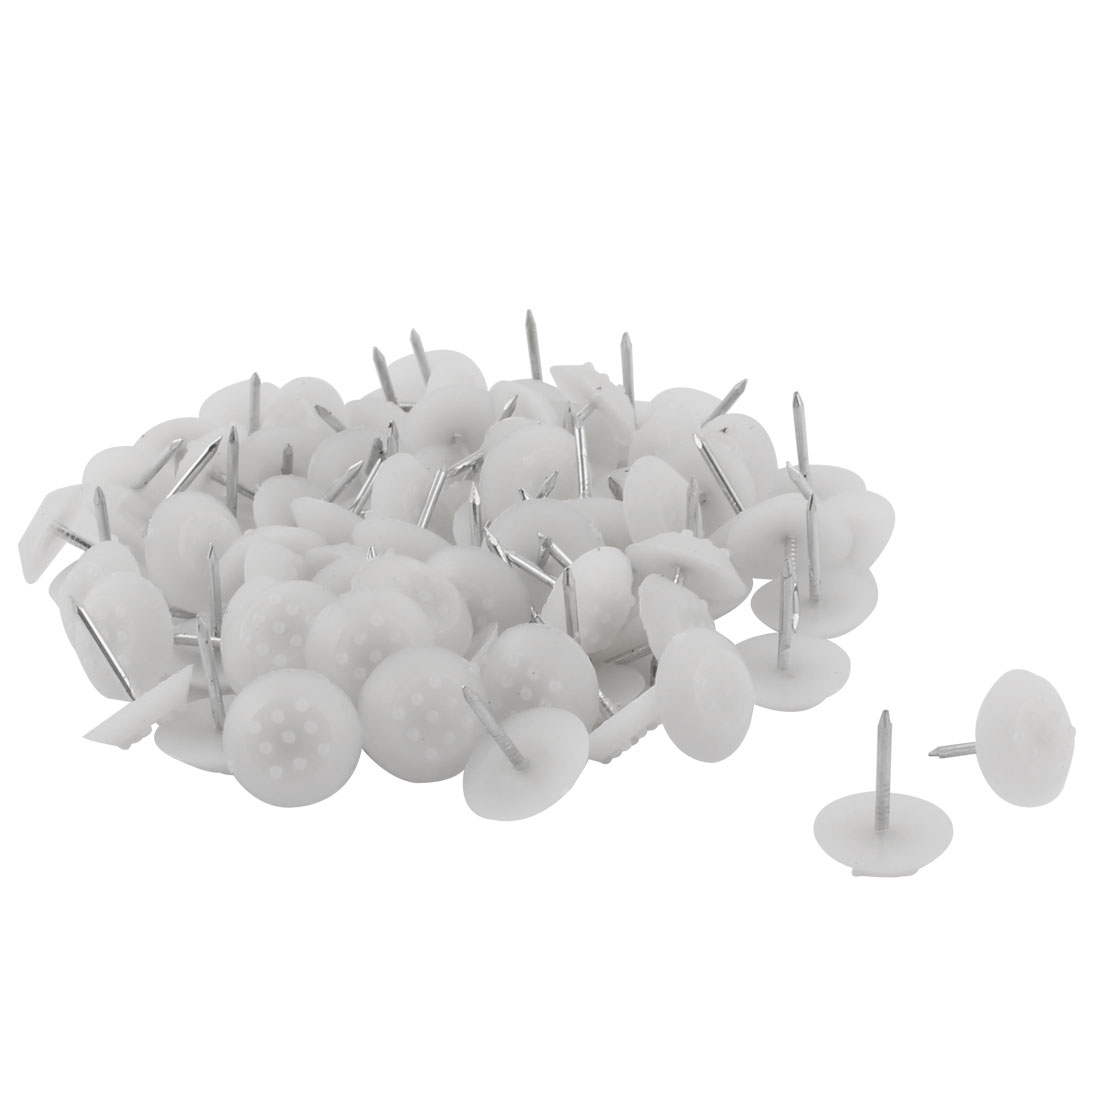 Furniture Chair Plastic Leg Feet Protector Non-slip Nails White 1.4cm Dia 80pcs